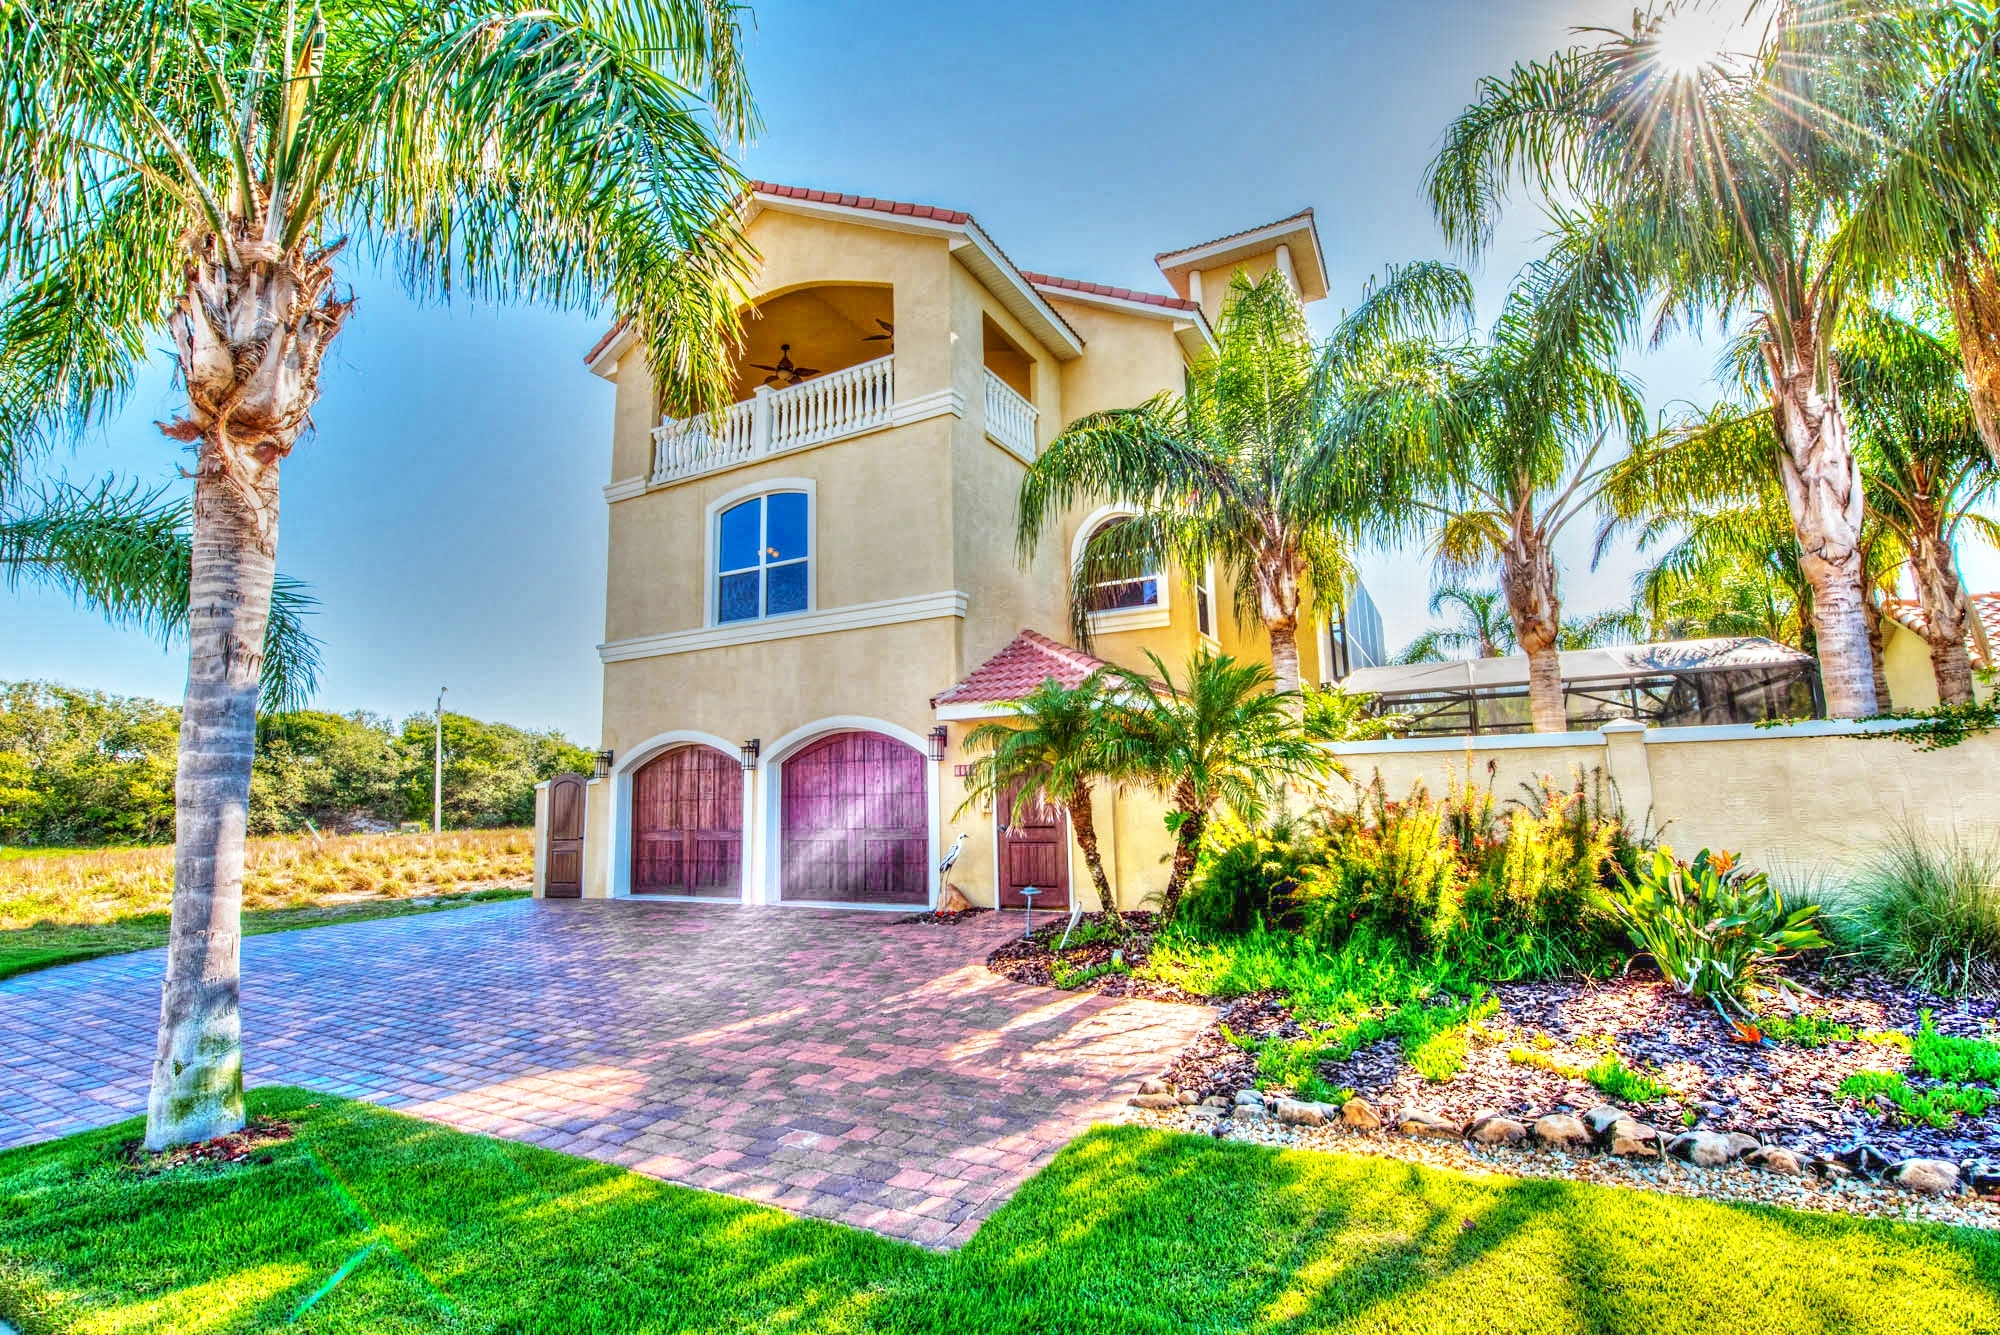 Accessible Ocean View Home With Whirlpool Walk-In Tub i